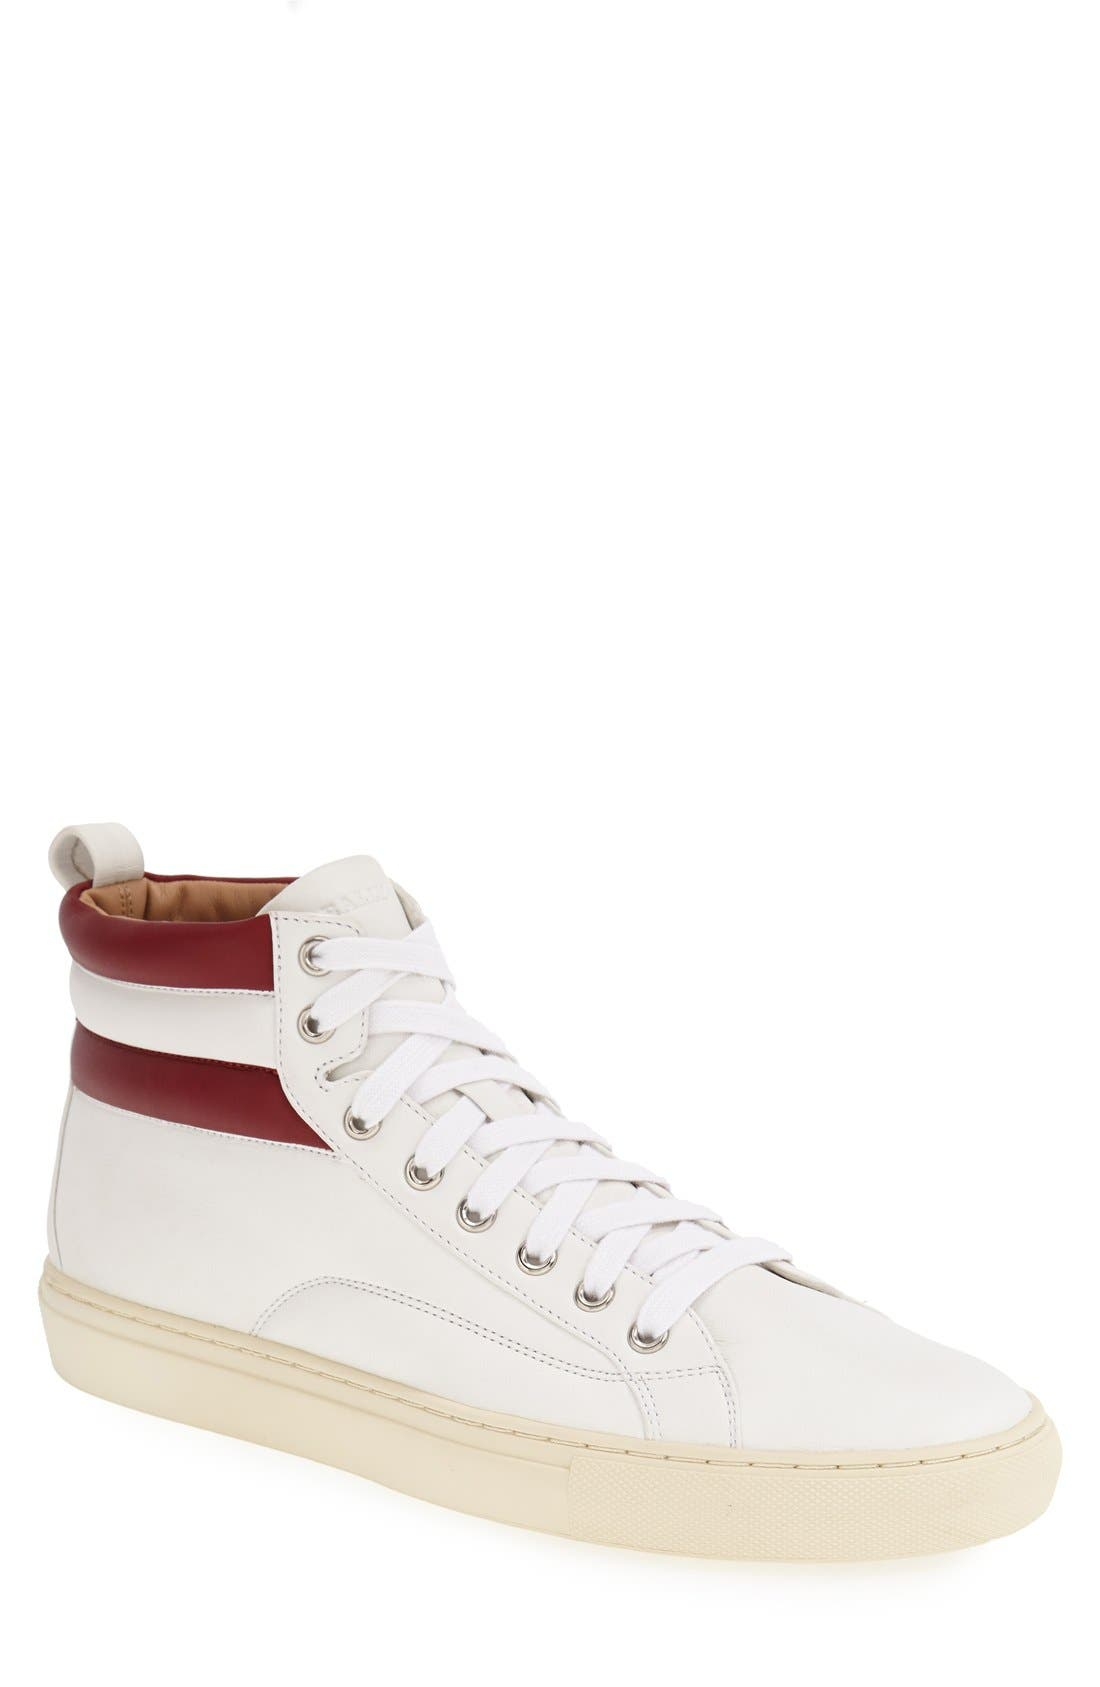 Bally 'Heaven' Water Resistant High Top